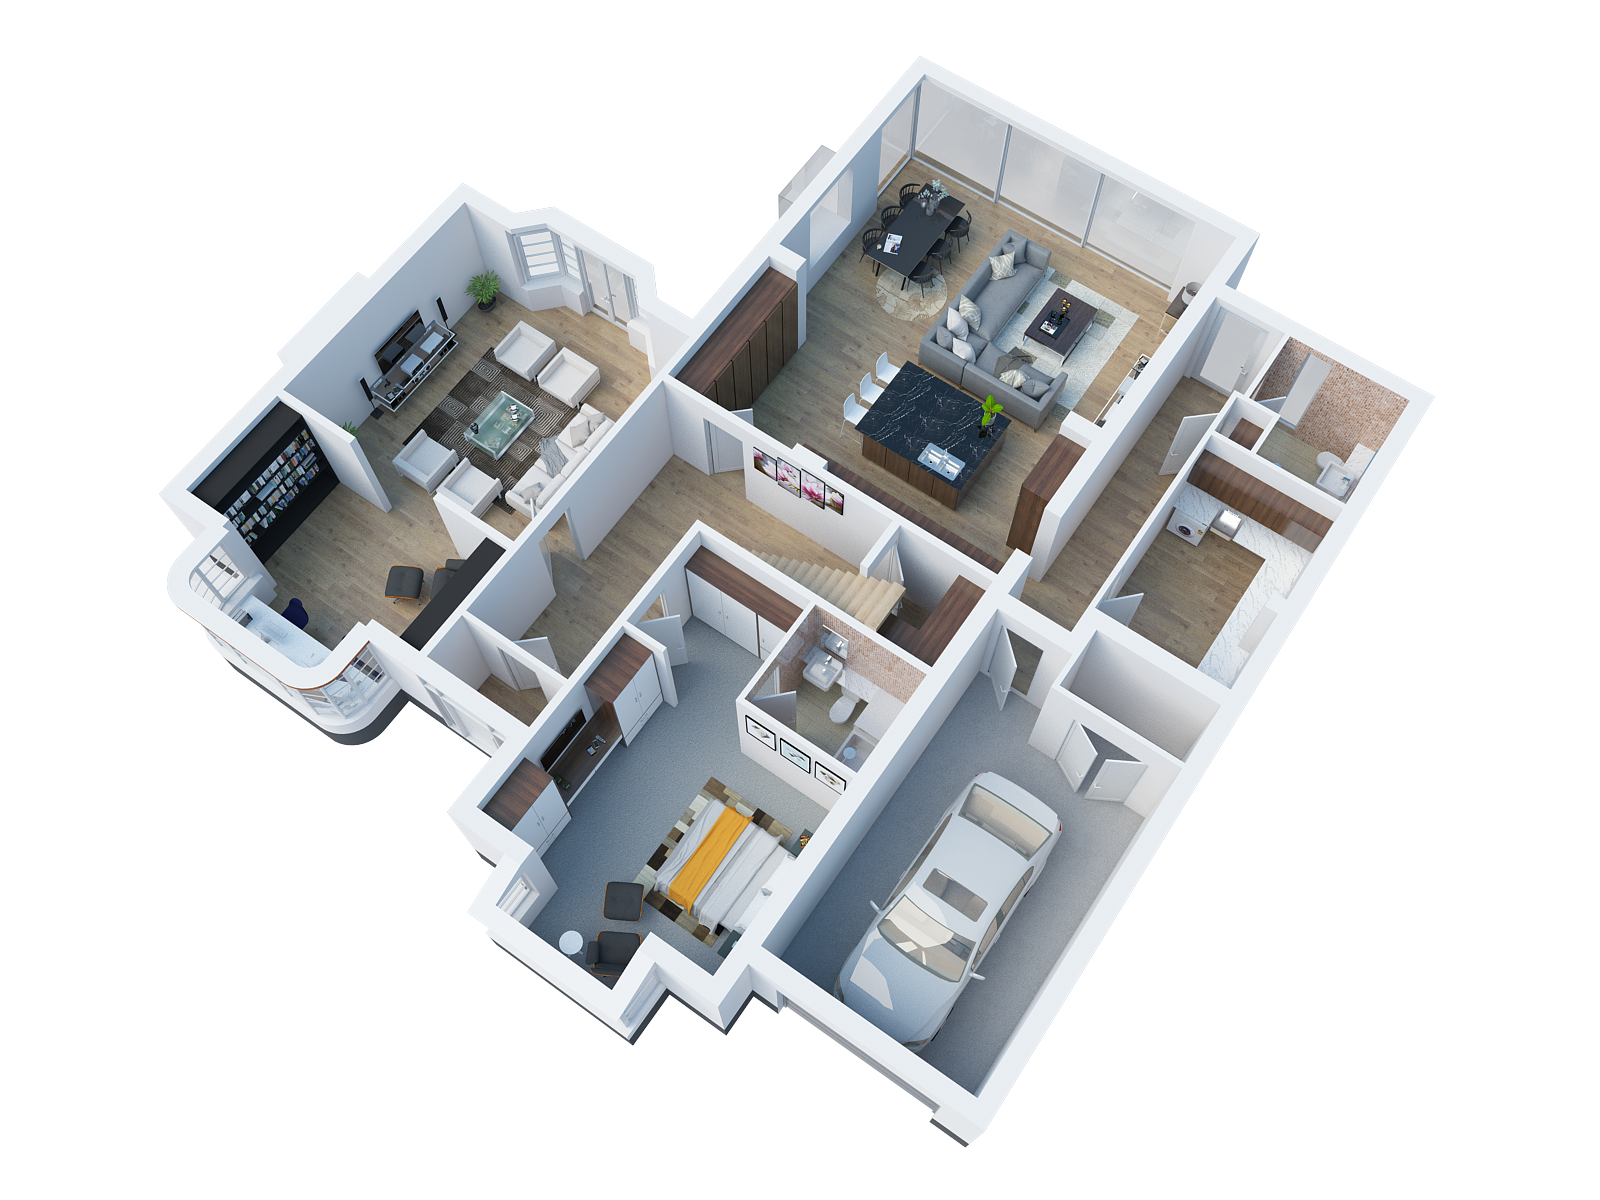 Architectural Desing in Goring Ground Floor 3D angled render.png